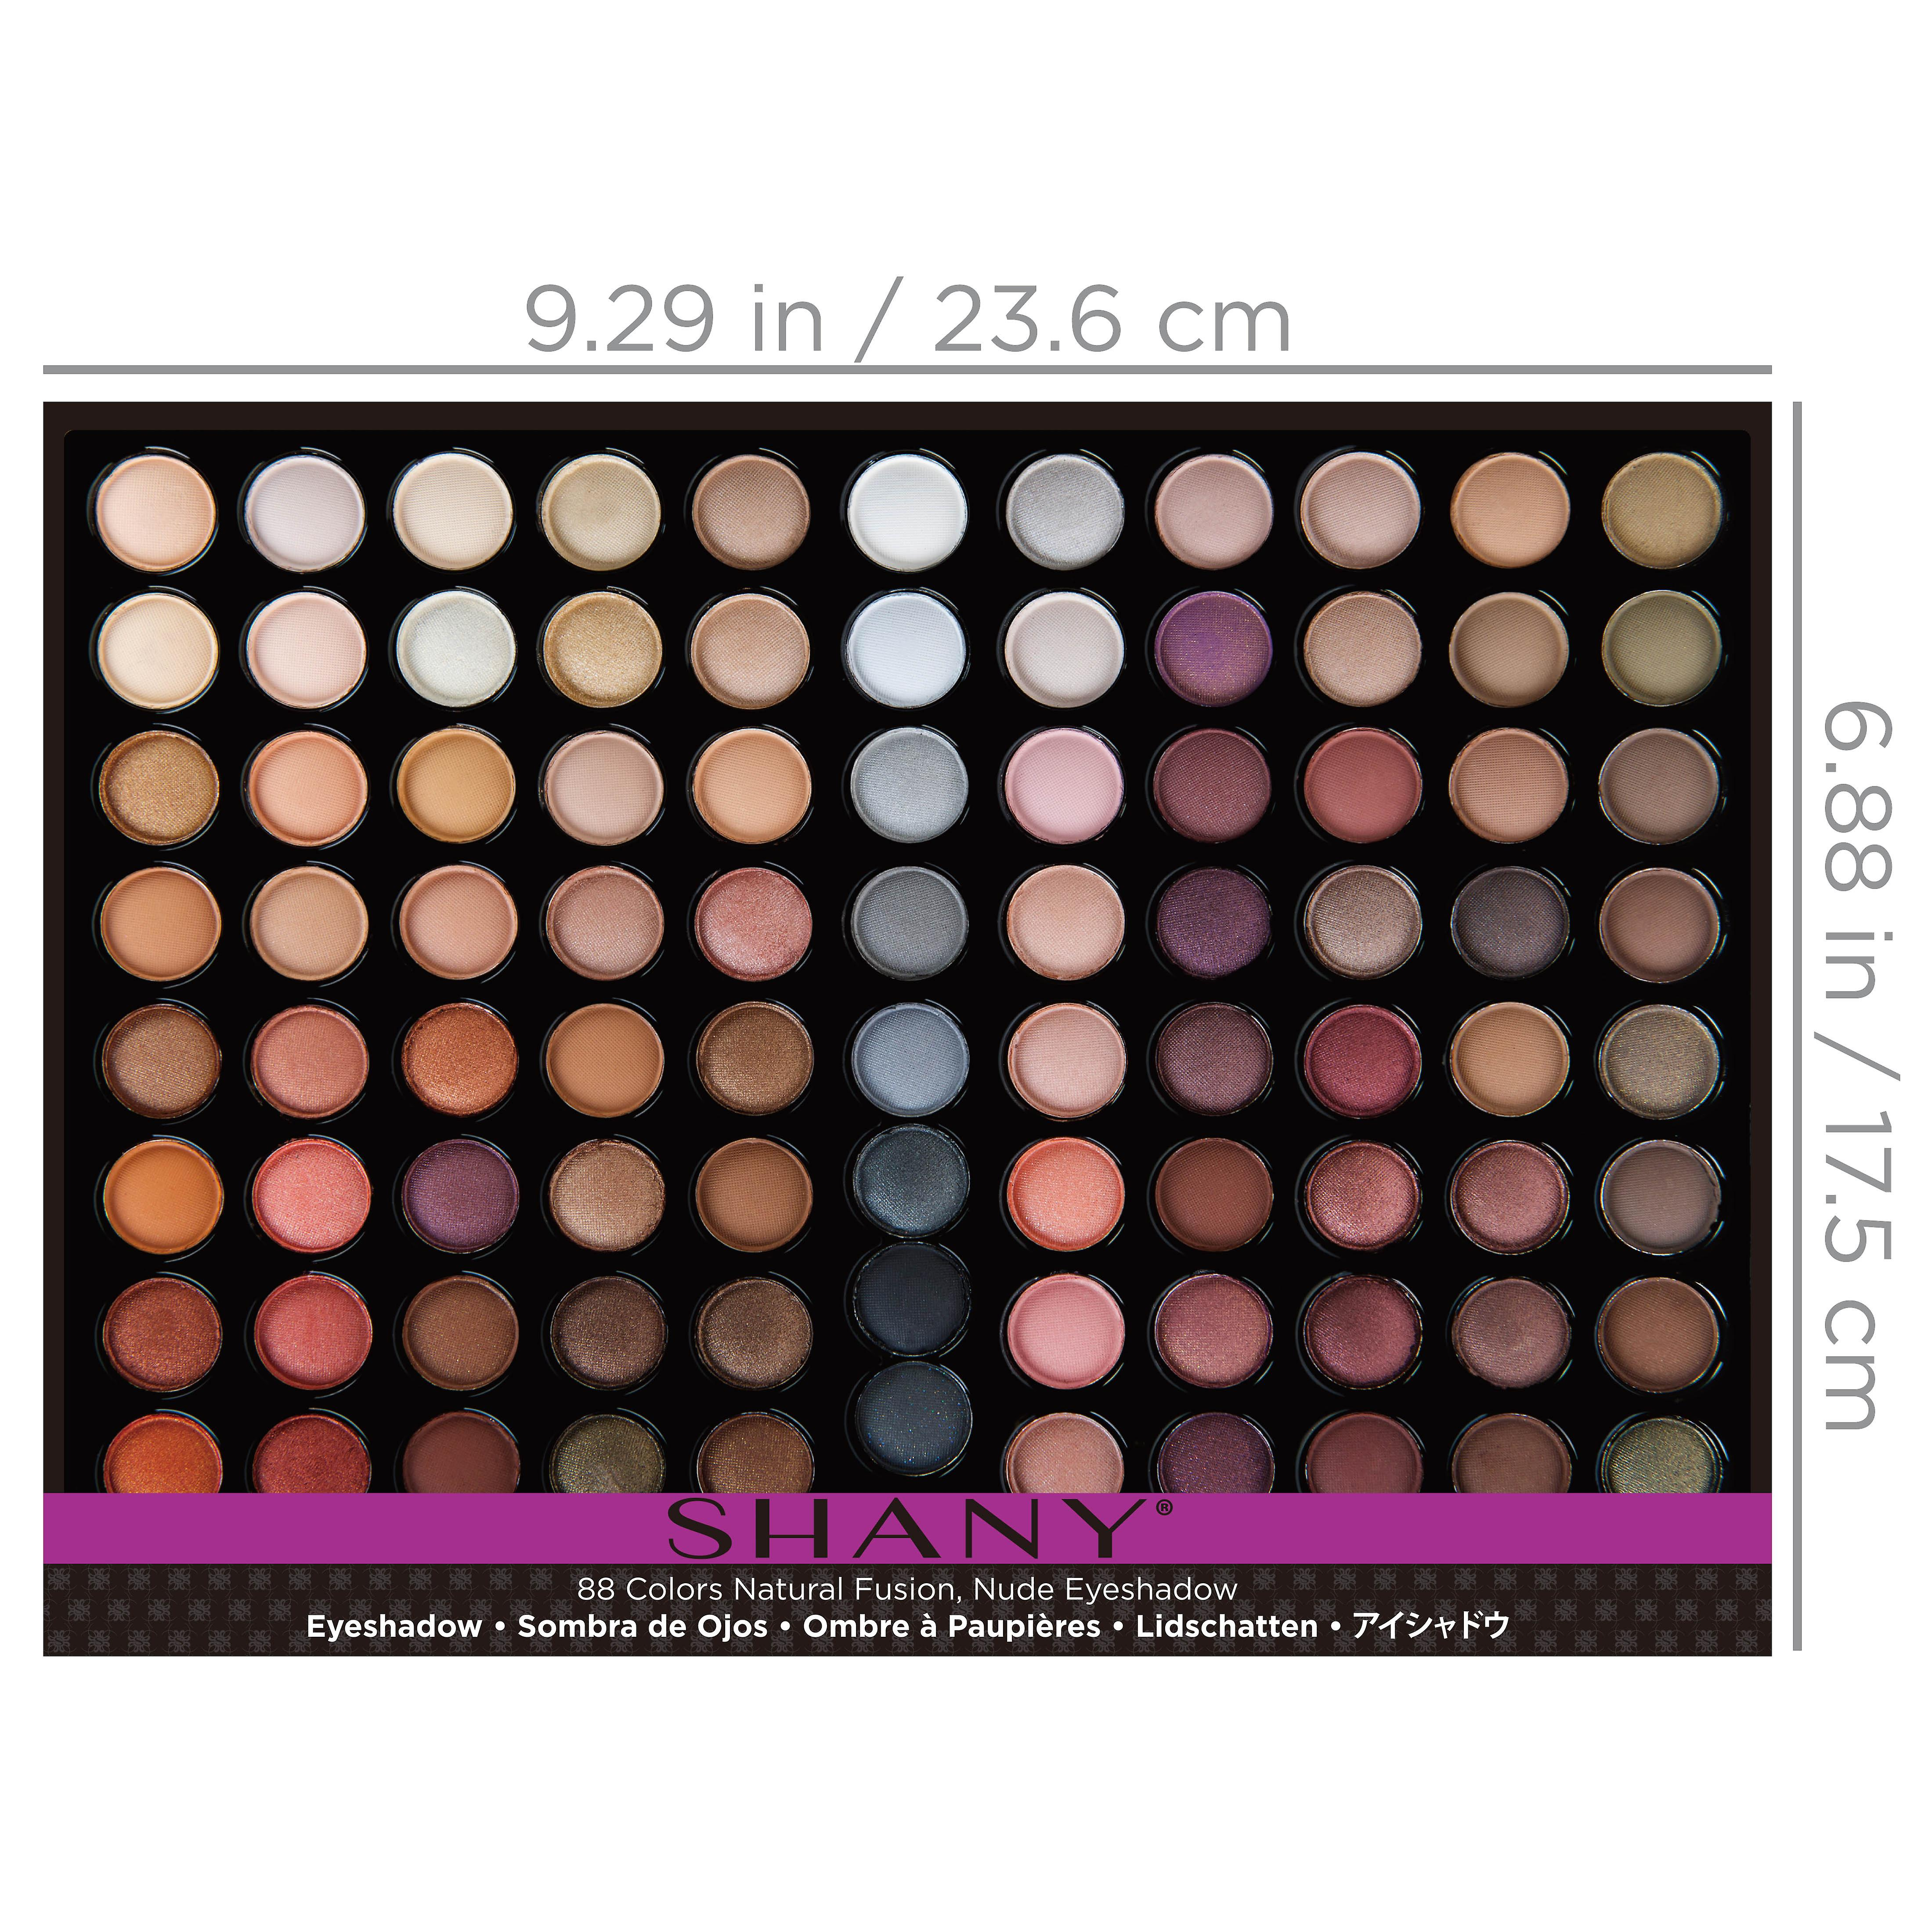 SHANY Natural Fusion - 88 Color Eye shadow Palette - Nude